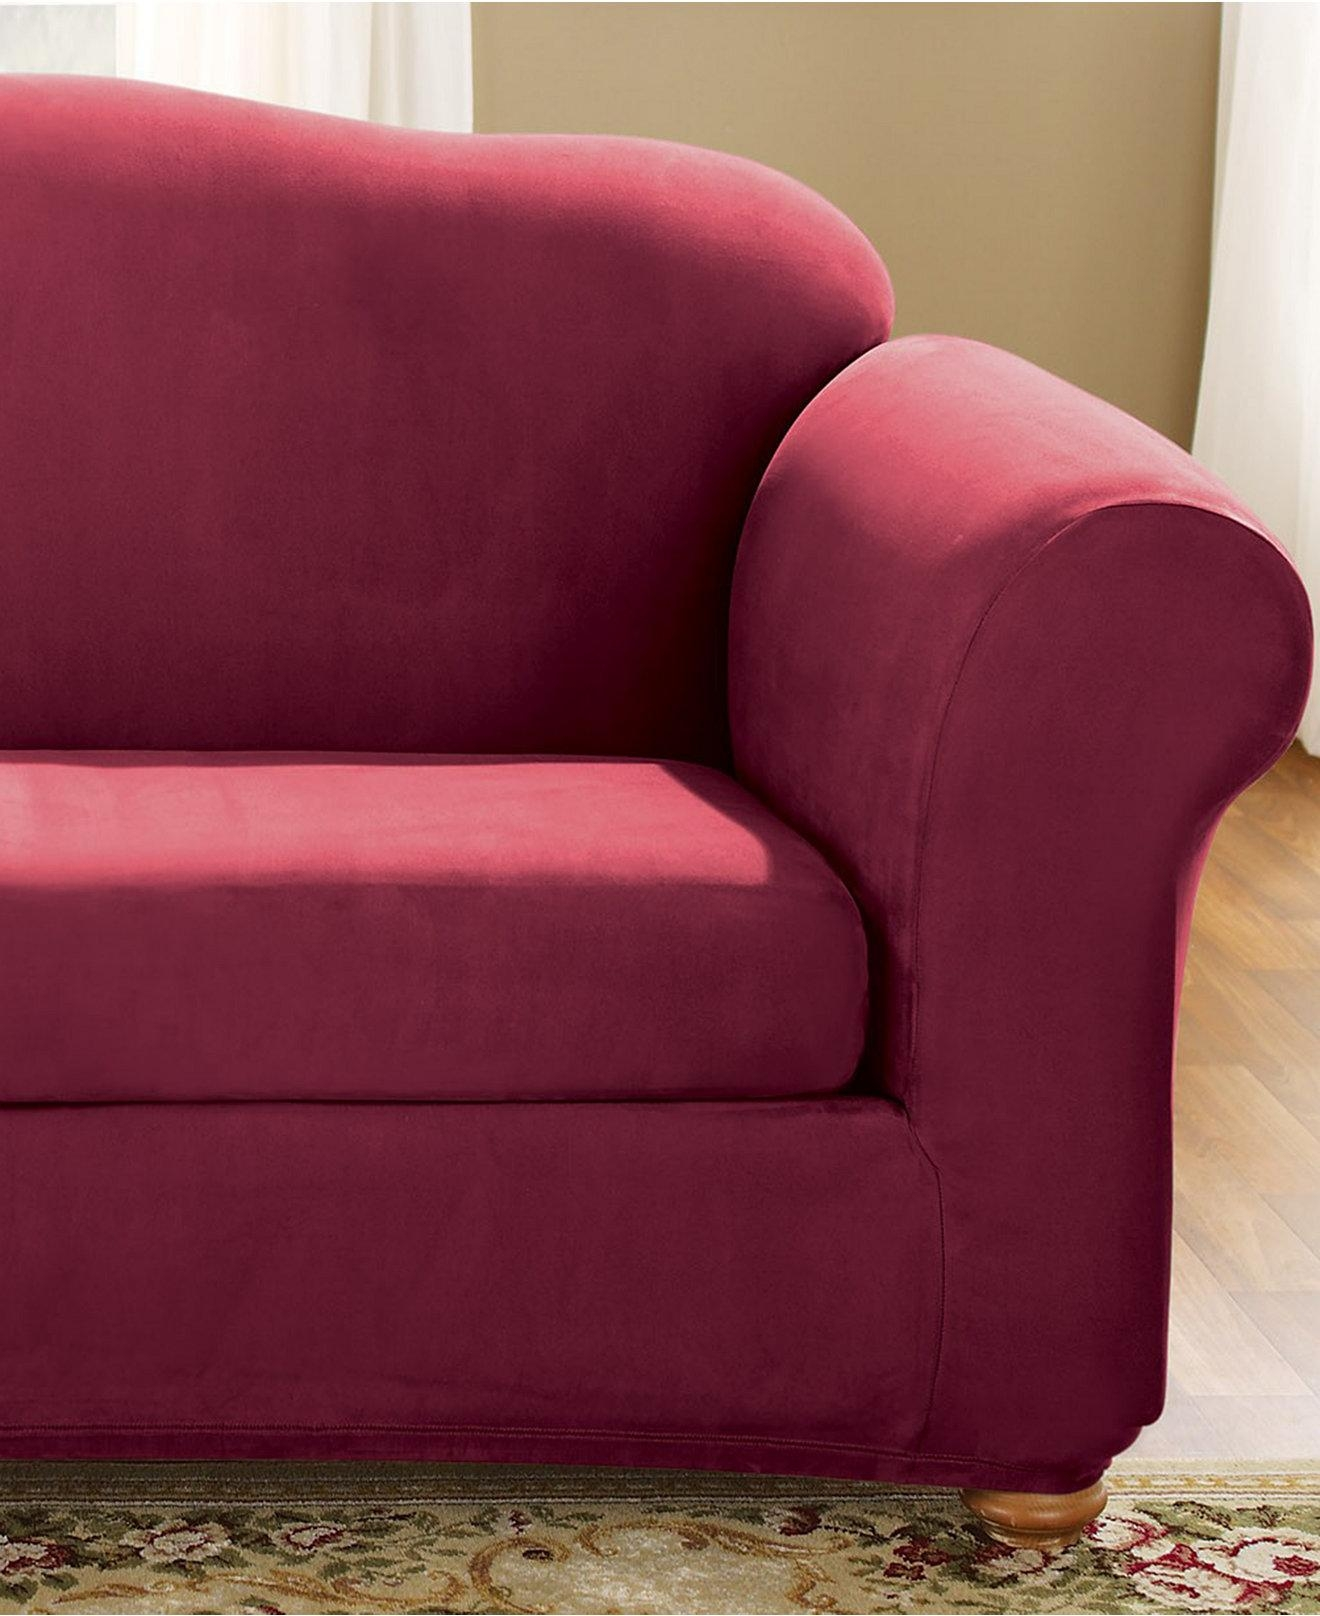 Tips: T Cushion Slipcovers For Sofas | Slipcovers For Chairs With For 2 Piece Sofa Covers (Image 27 of 27)